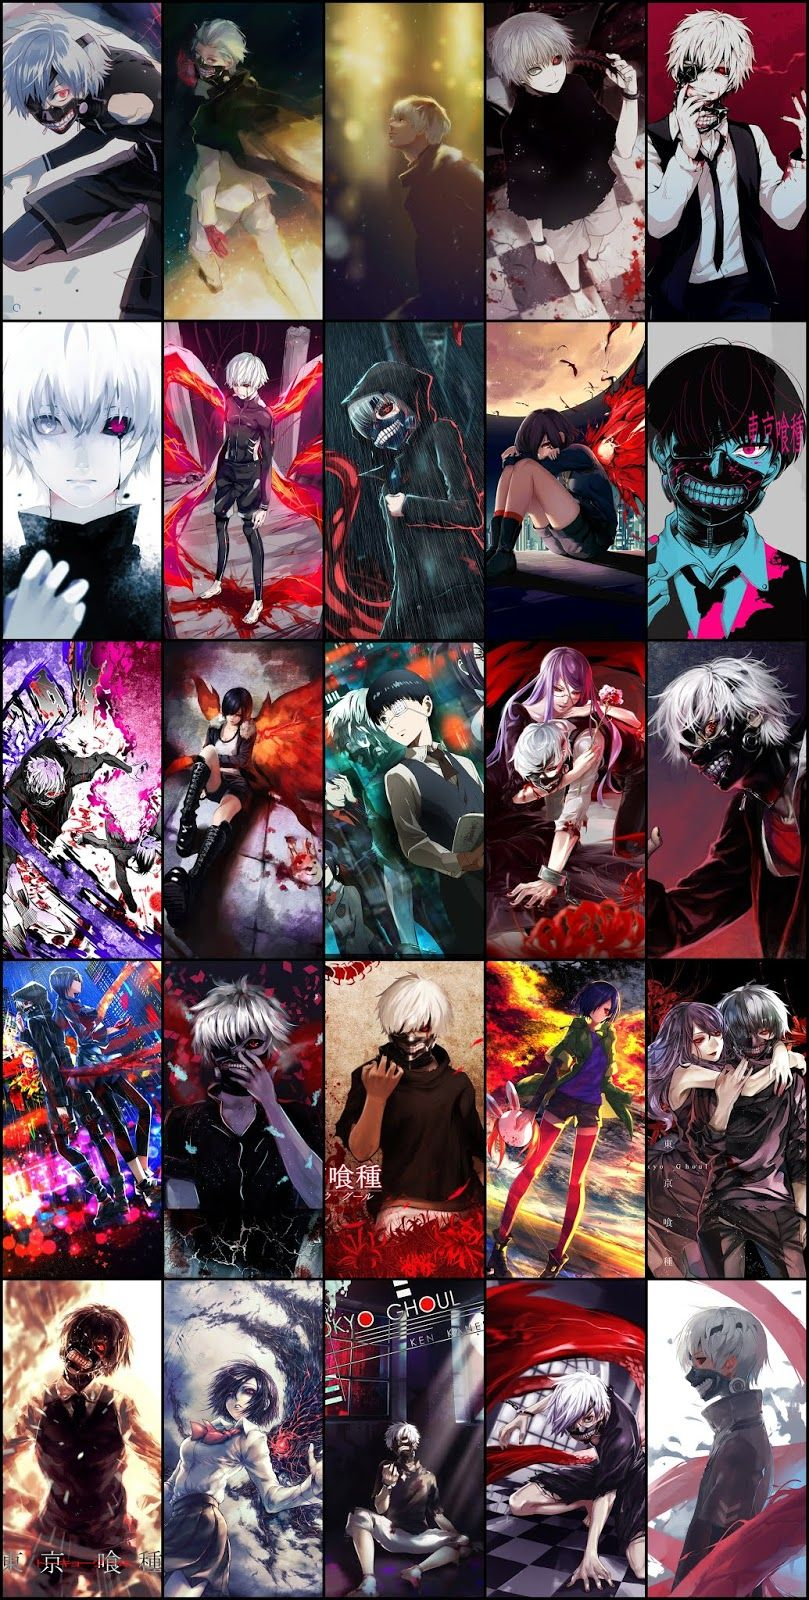 Tokyo Ghoul Wallpaper Pack For Mobile Phone (Part 06